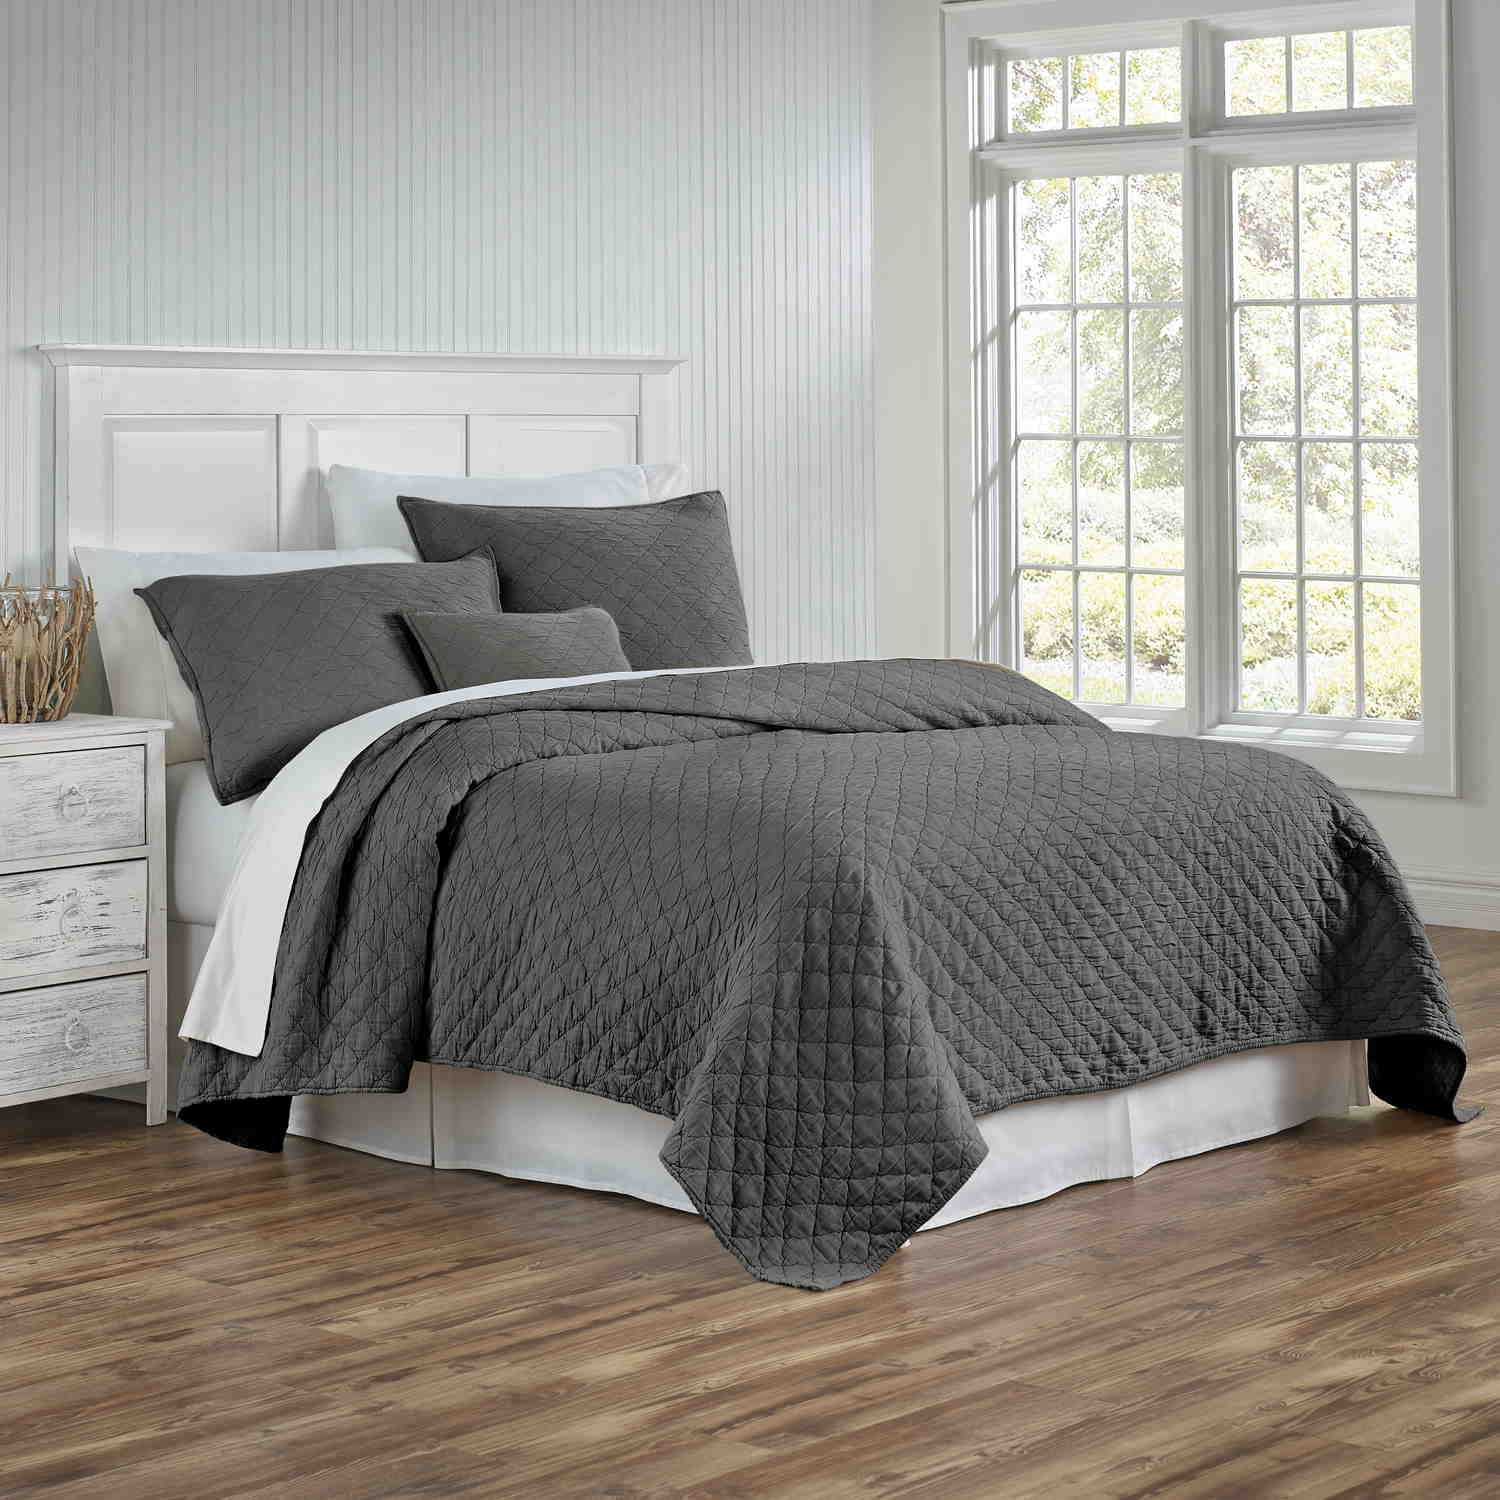 Traditions Linens Bedding Louisa Coverlet And Sham